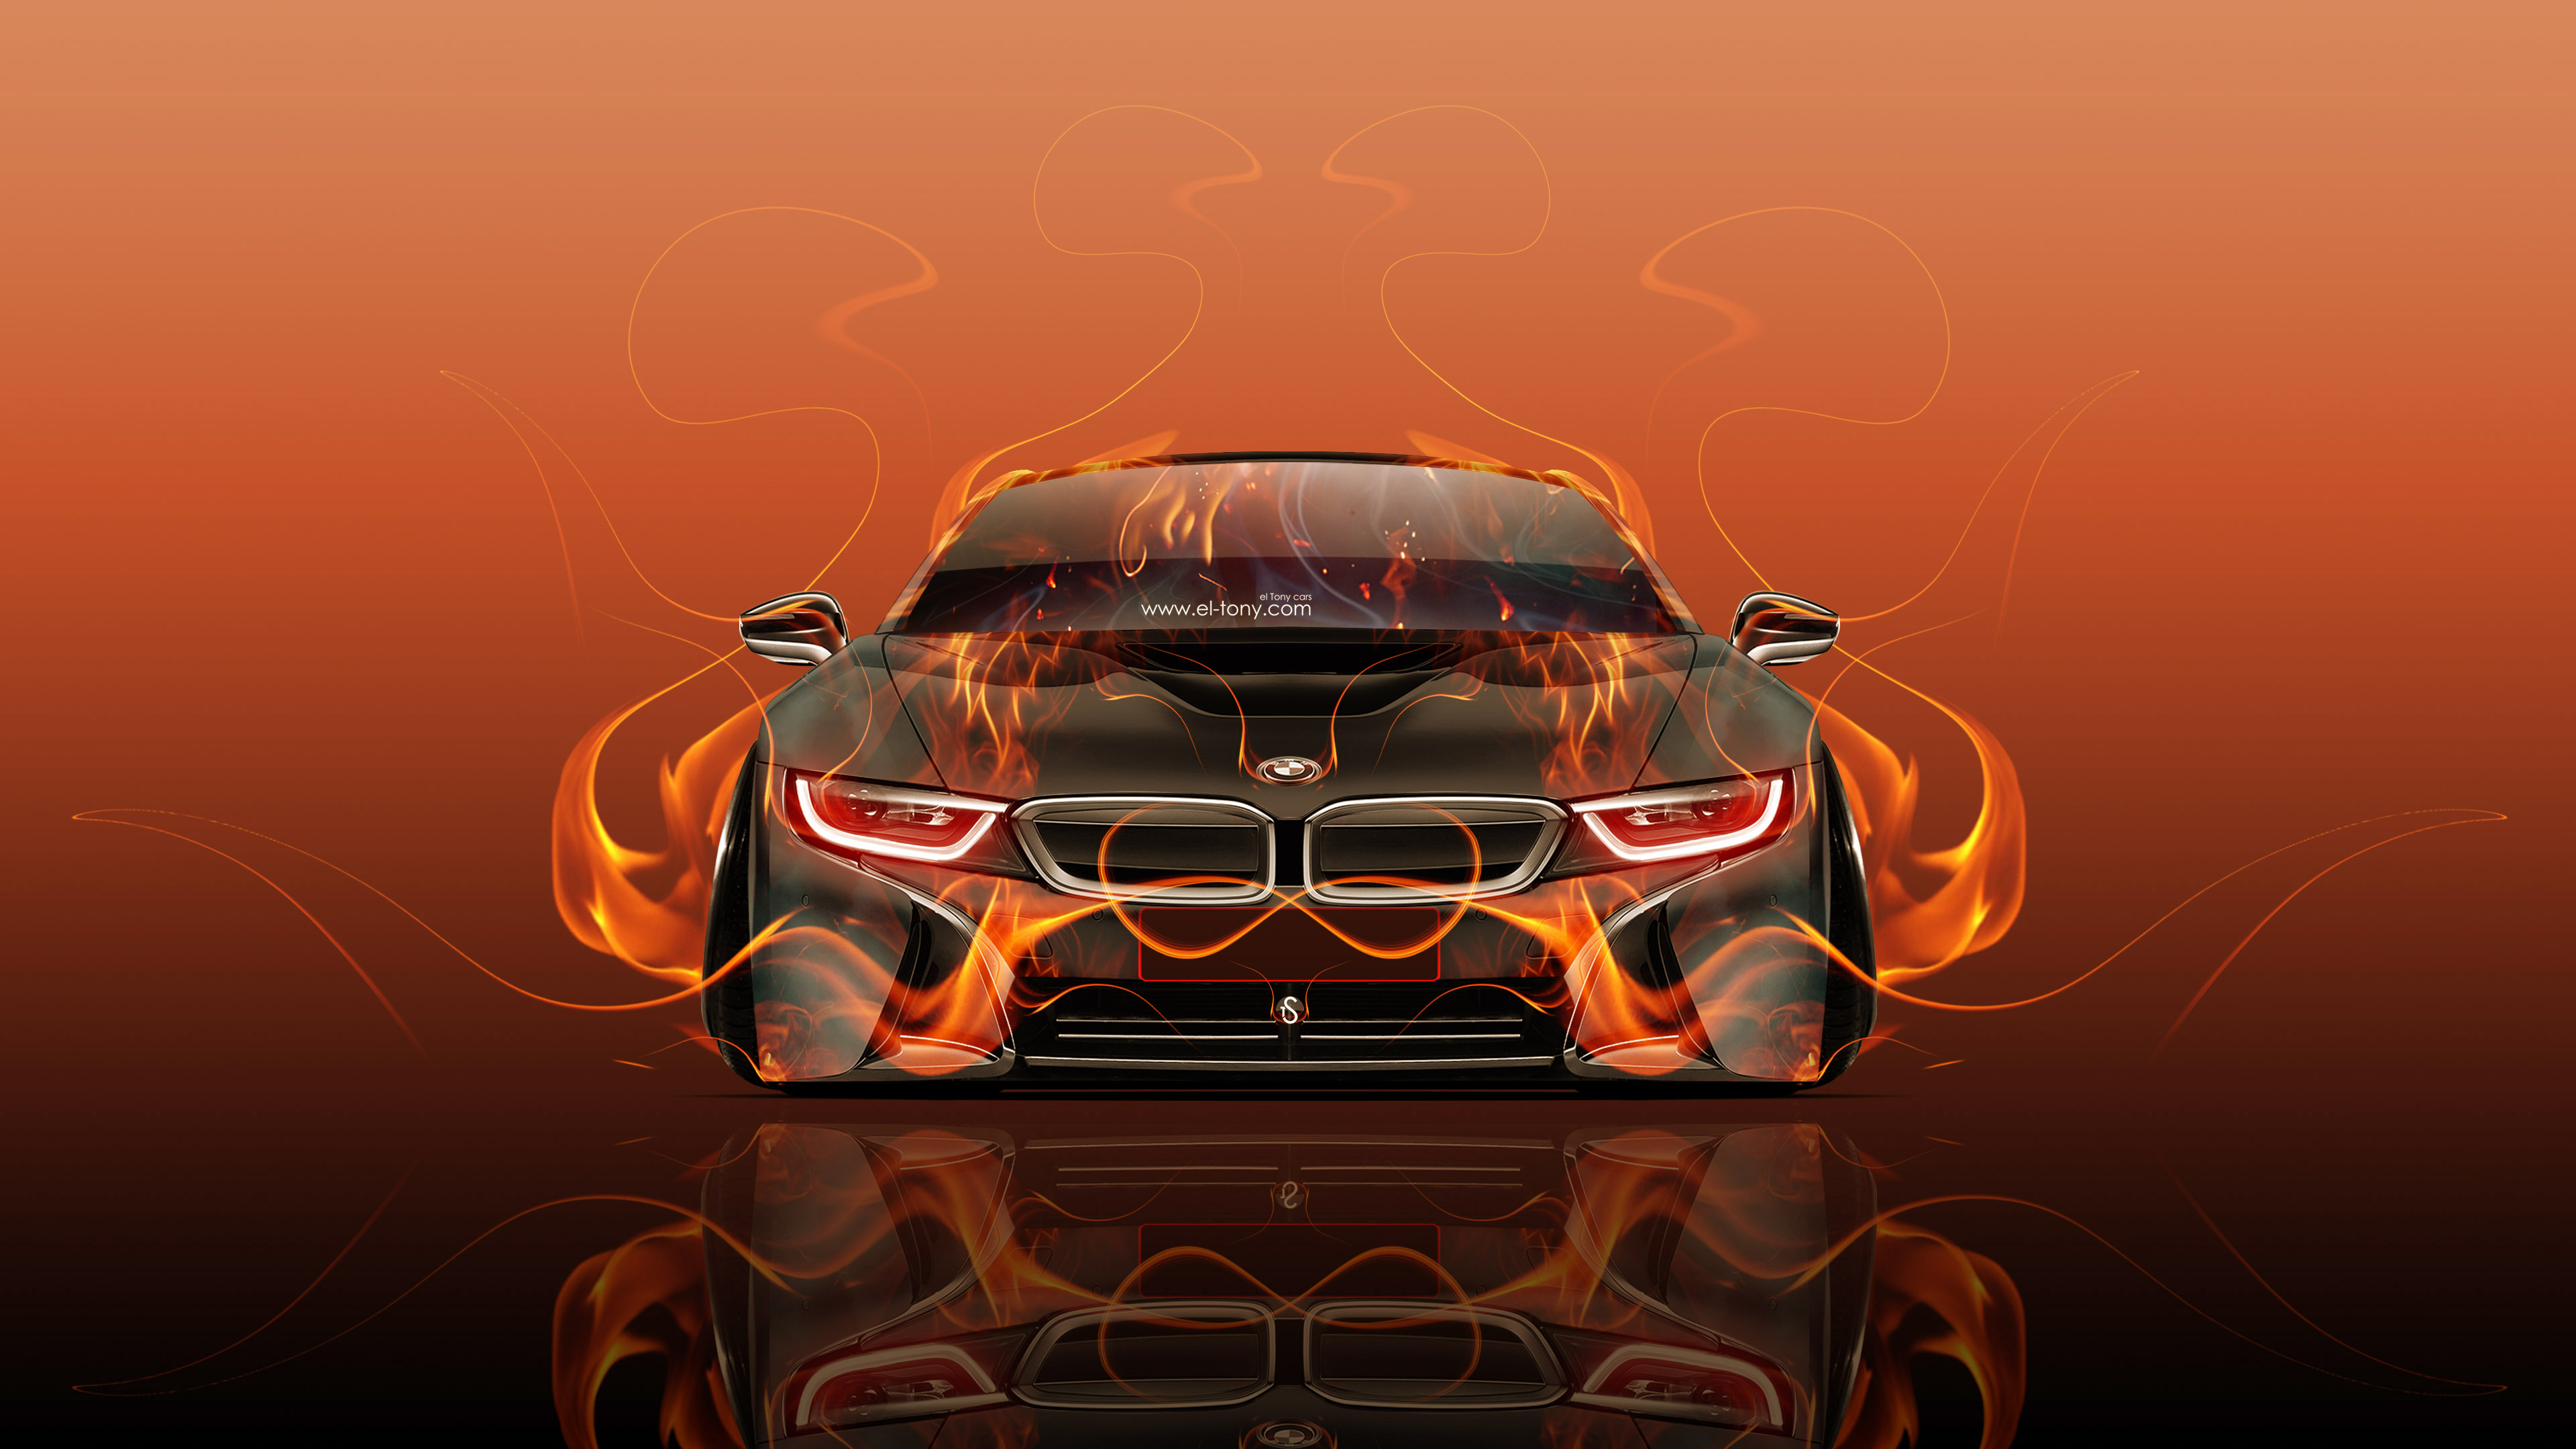 Bmw I8 Front Fire Abstract Car 2015 Red Orange Black Colors 4k